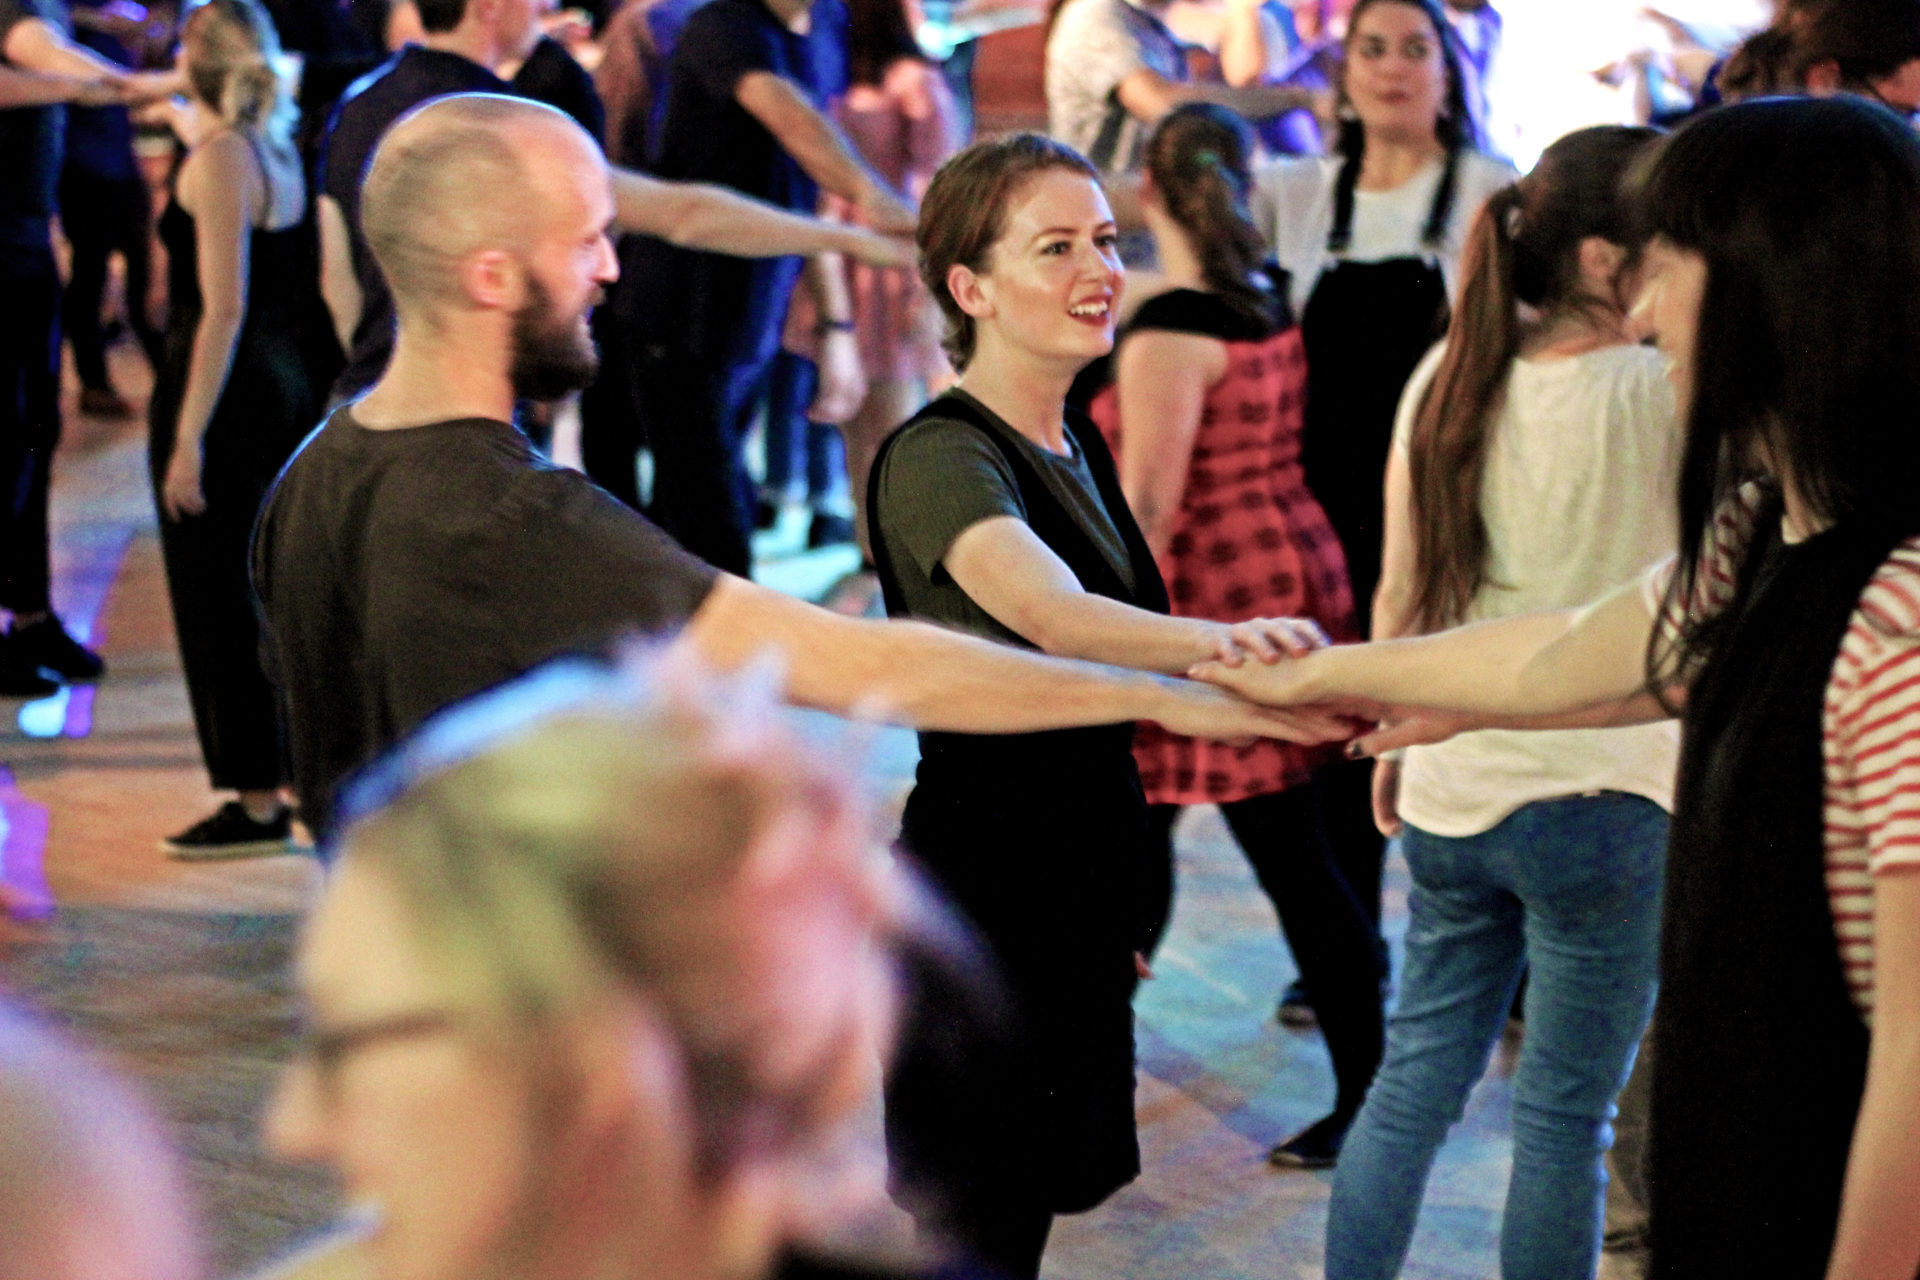 PEople dancing at the Ceilidh Club